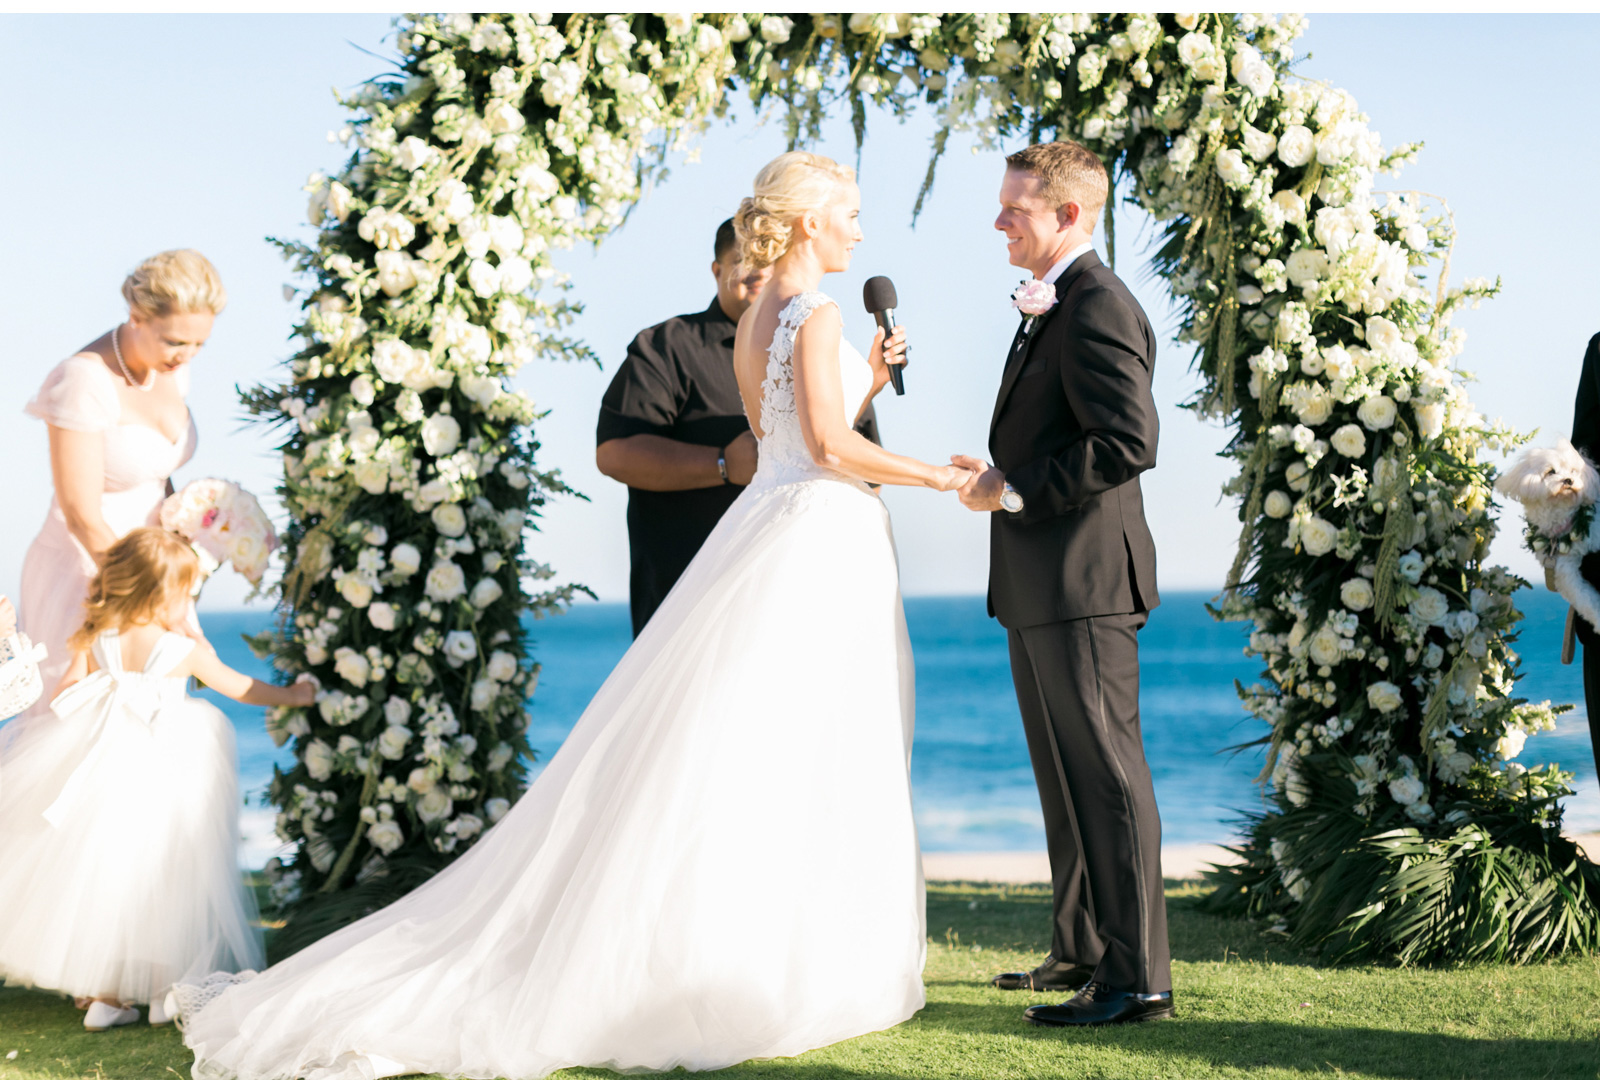 Style-Me-Pretty-Cabo-Wedding-Natalie-Schutt-Photography_04.jpg